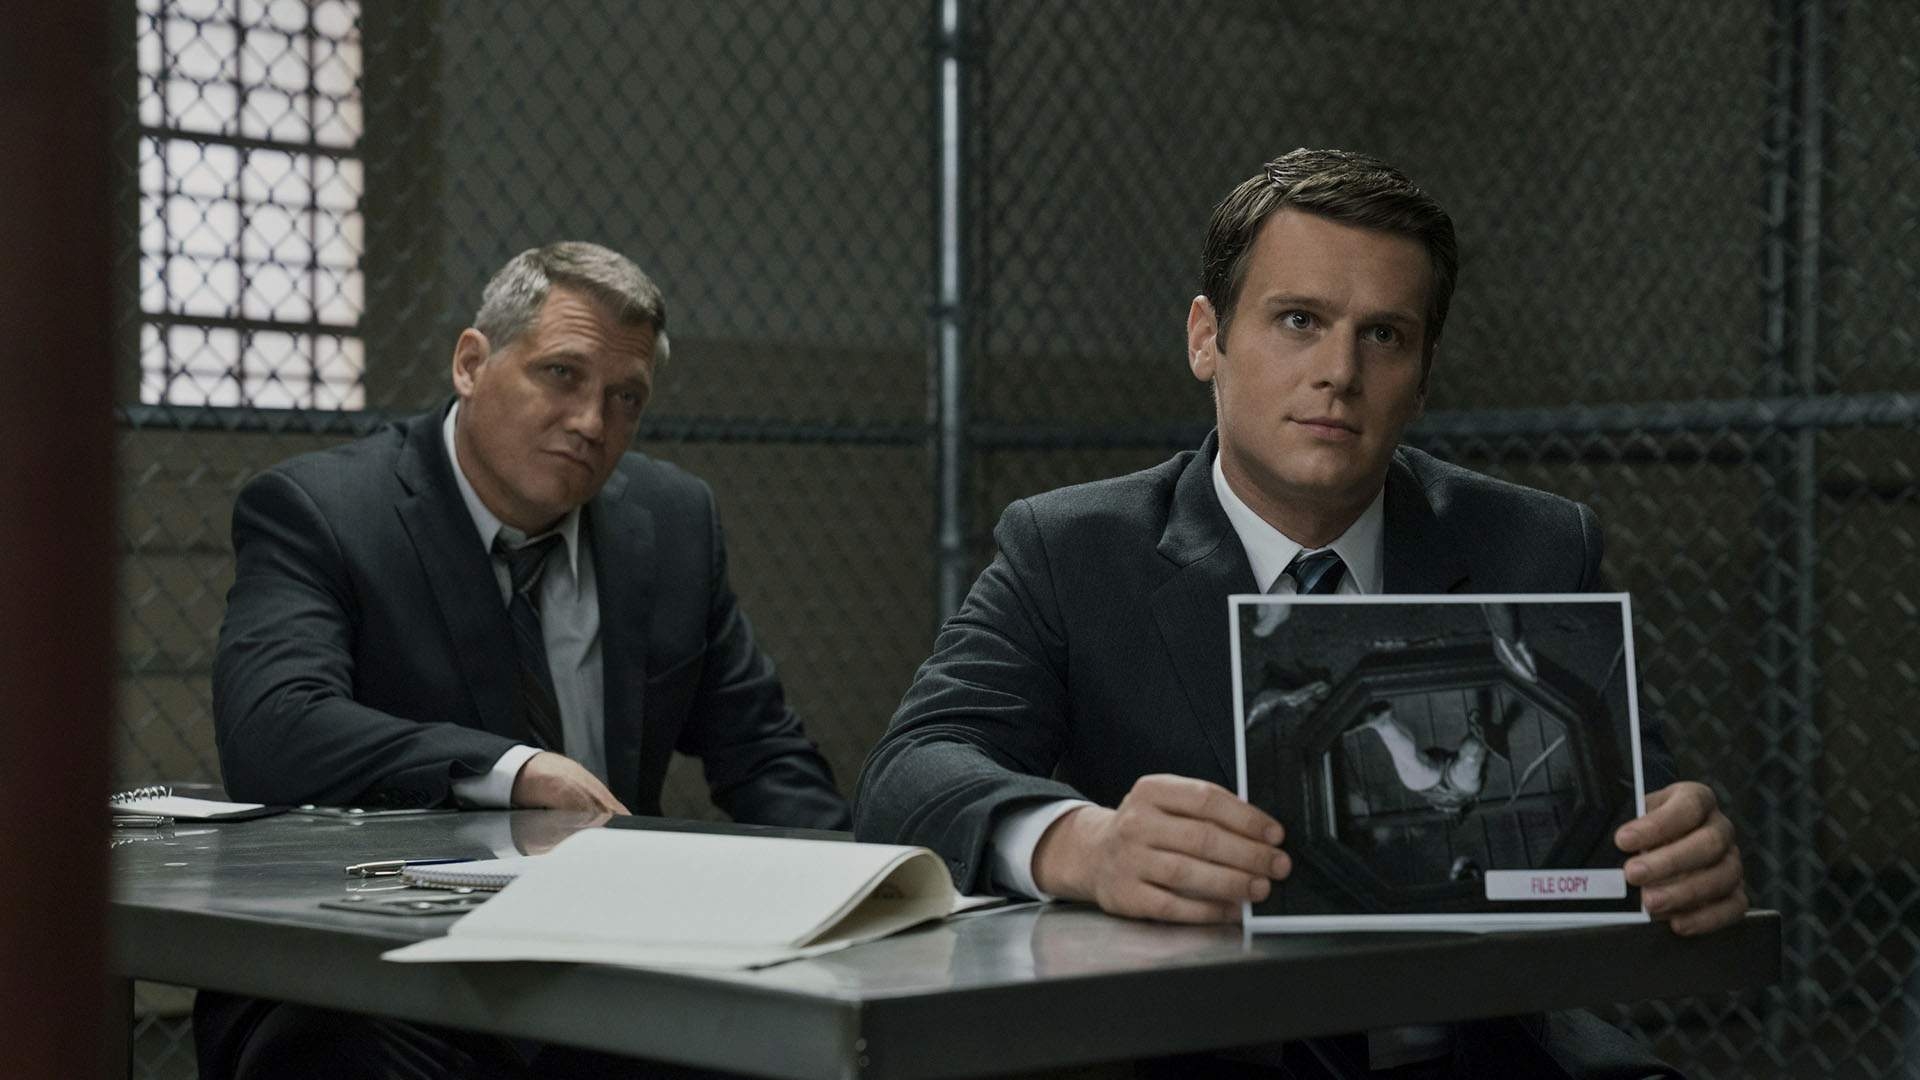 Mindhunter' and Its Creepy True-Crime tv series hbo tv series new tv series comedy netflix and chill tv series